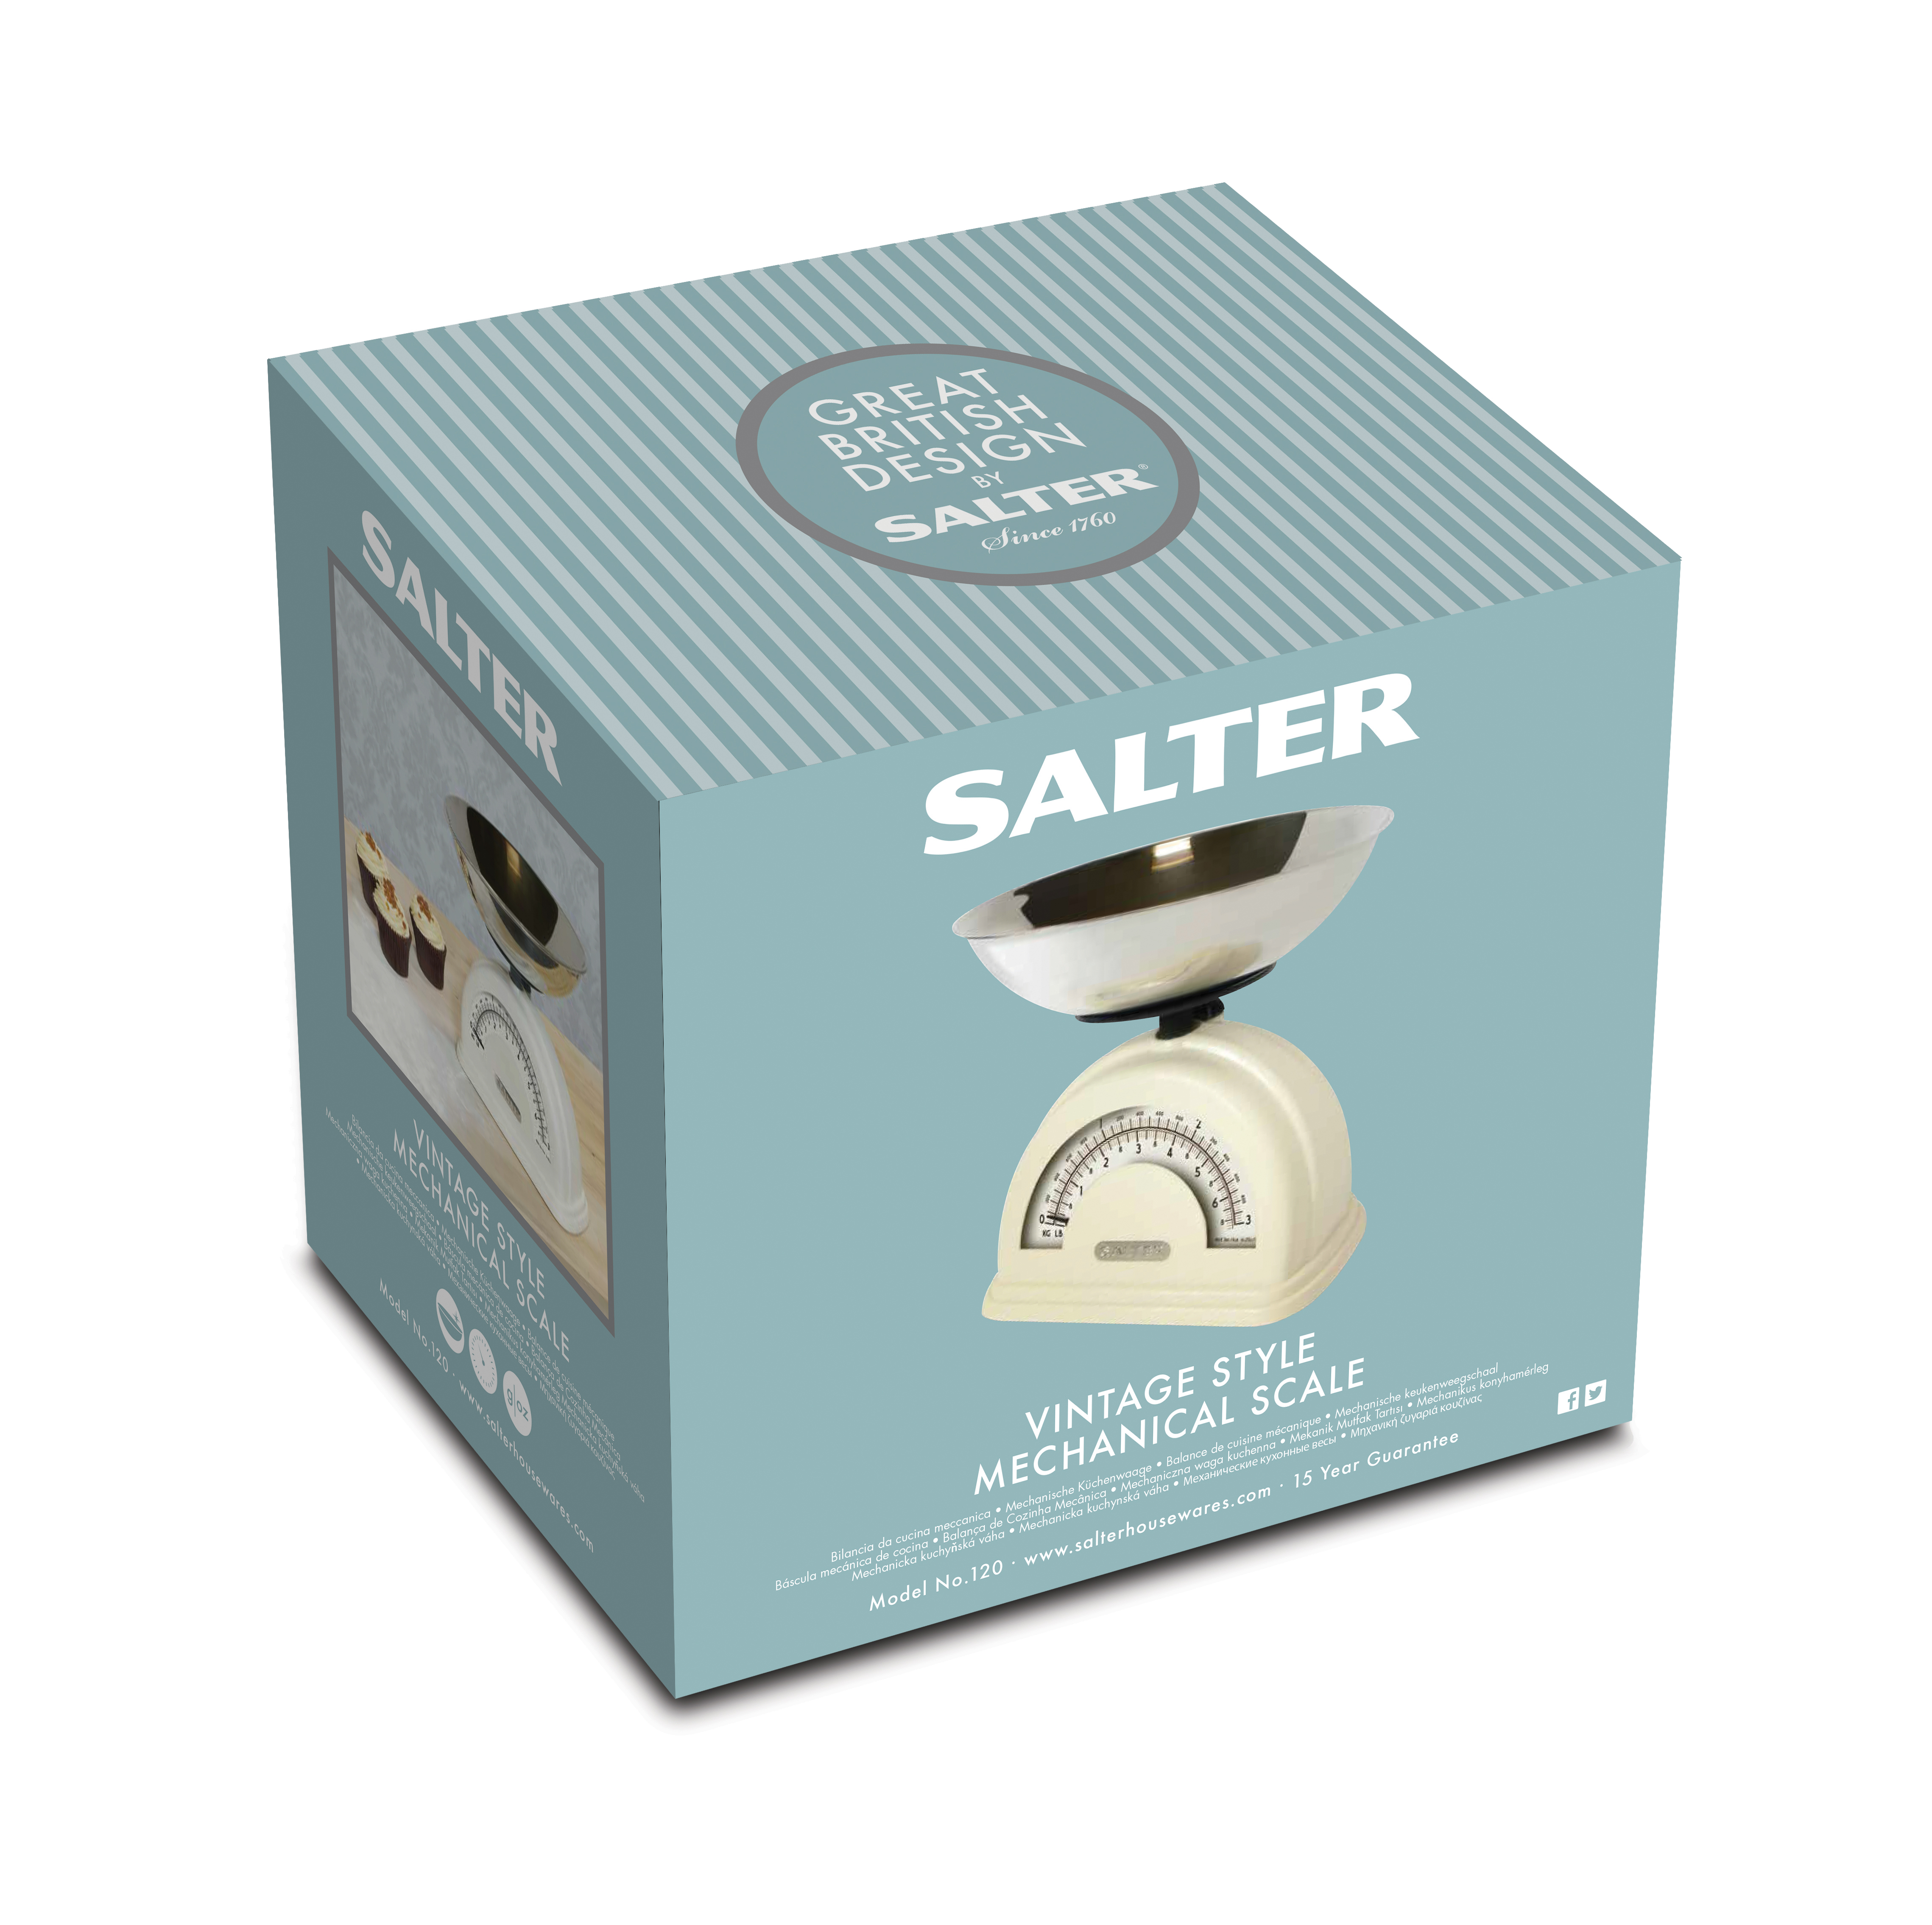 Salter Kitchen Scales Argos.Salter Vintage Style Mechanical Kitchen ...